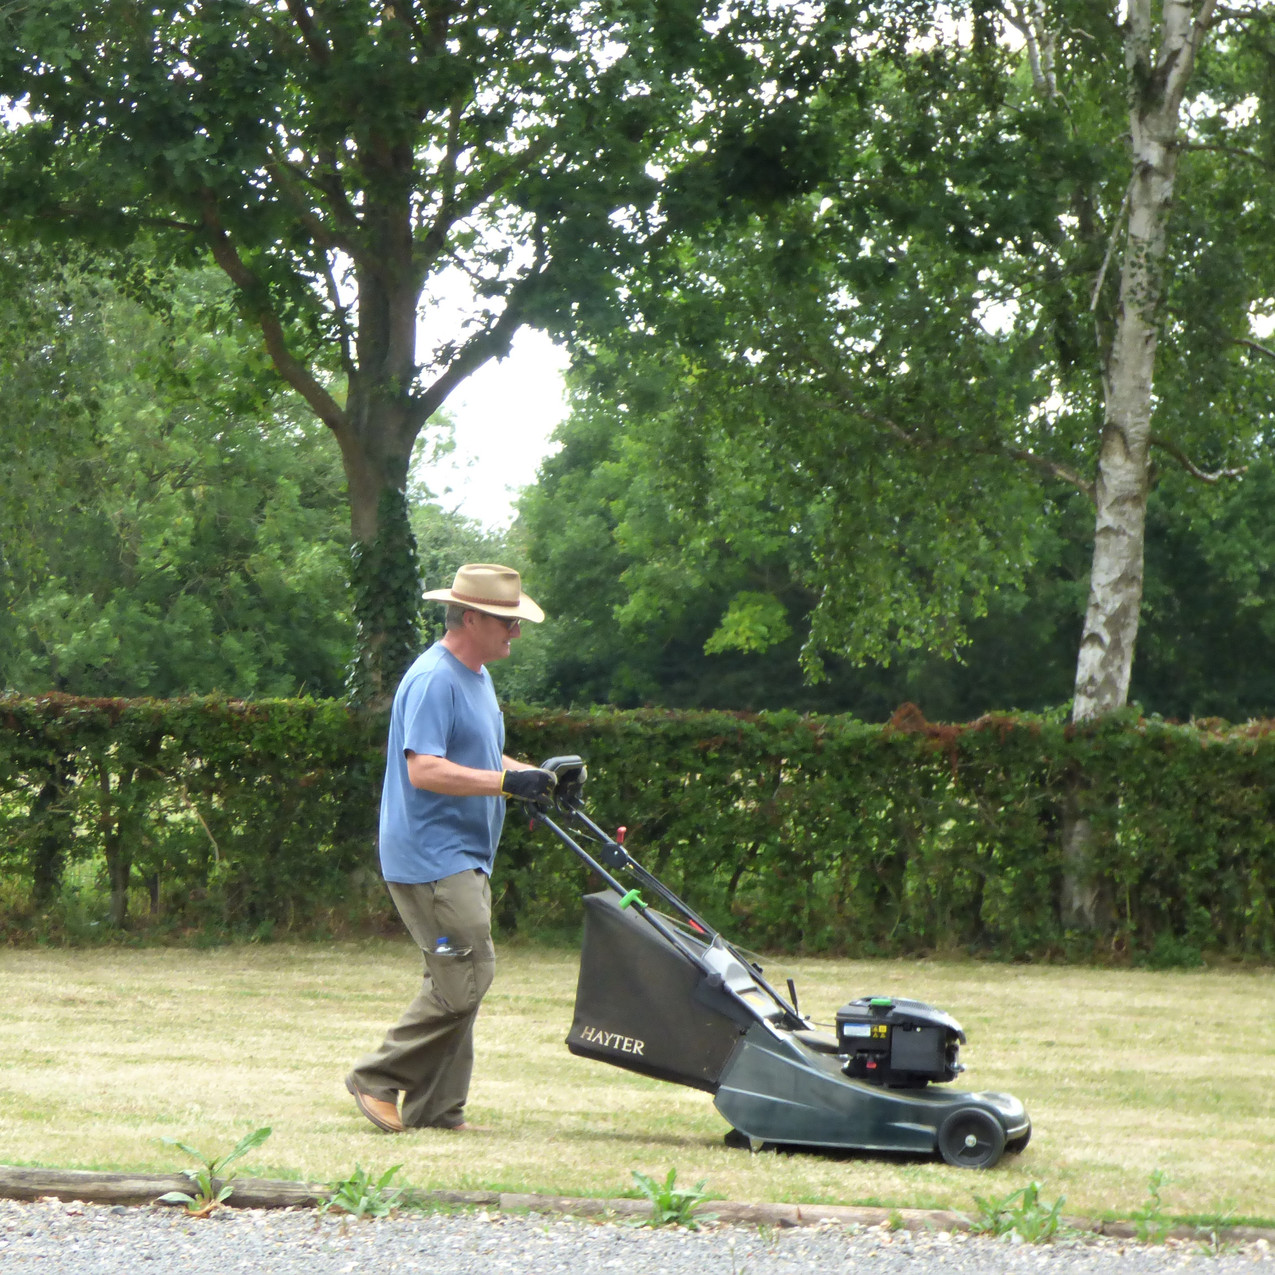 Clive mowing the grass